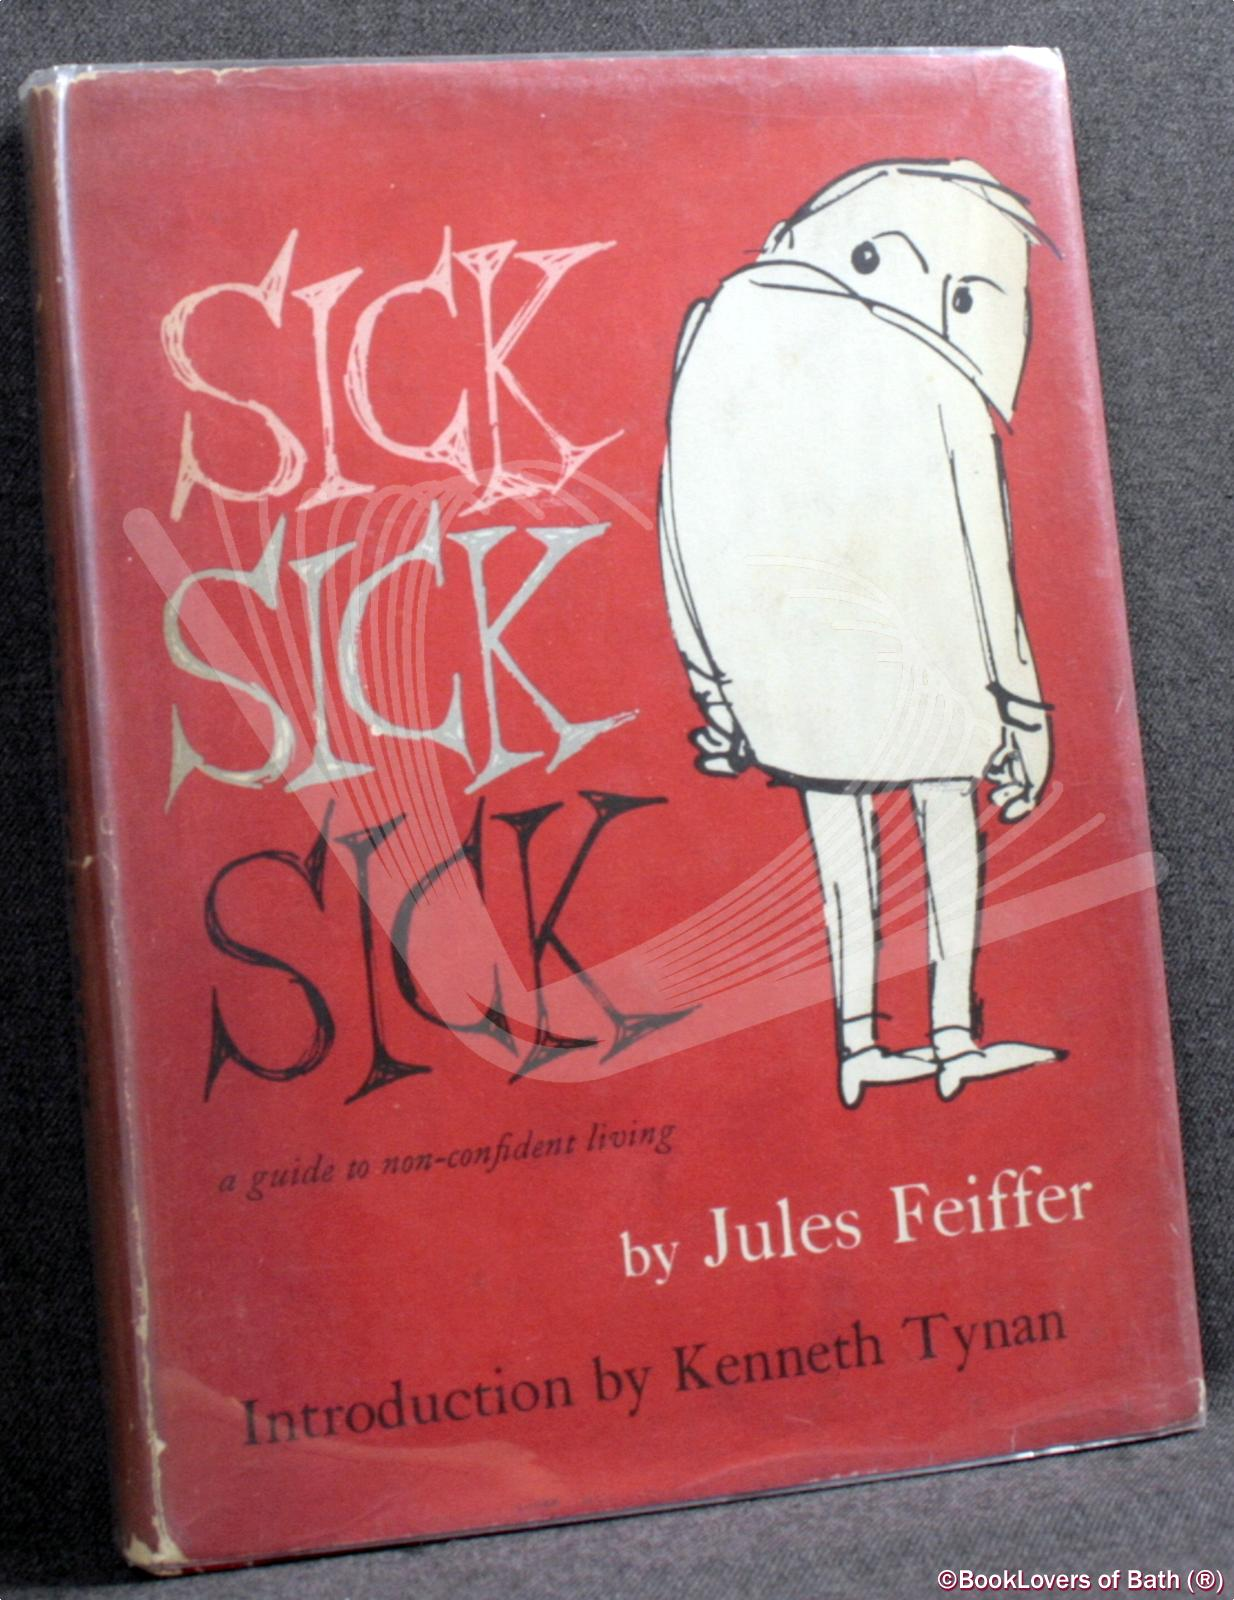 Sick Sick Sick: A Guide to Non-confident Living - Jules Feiffer